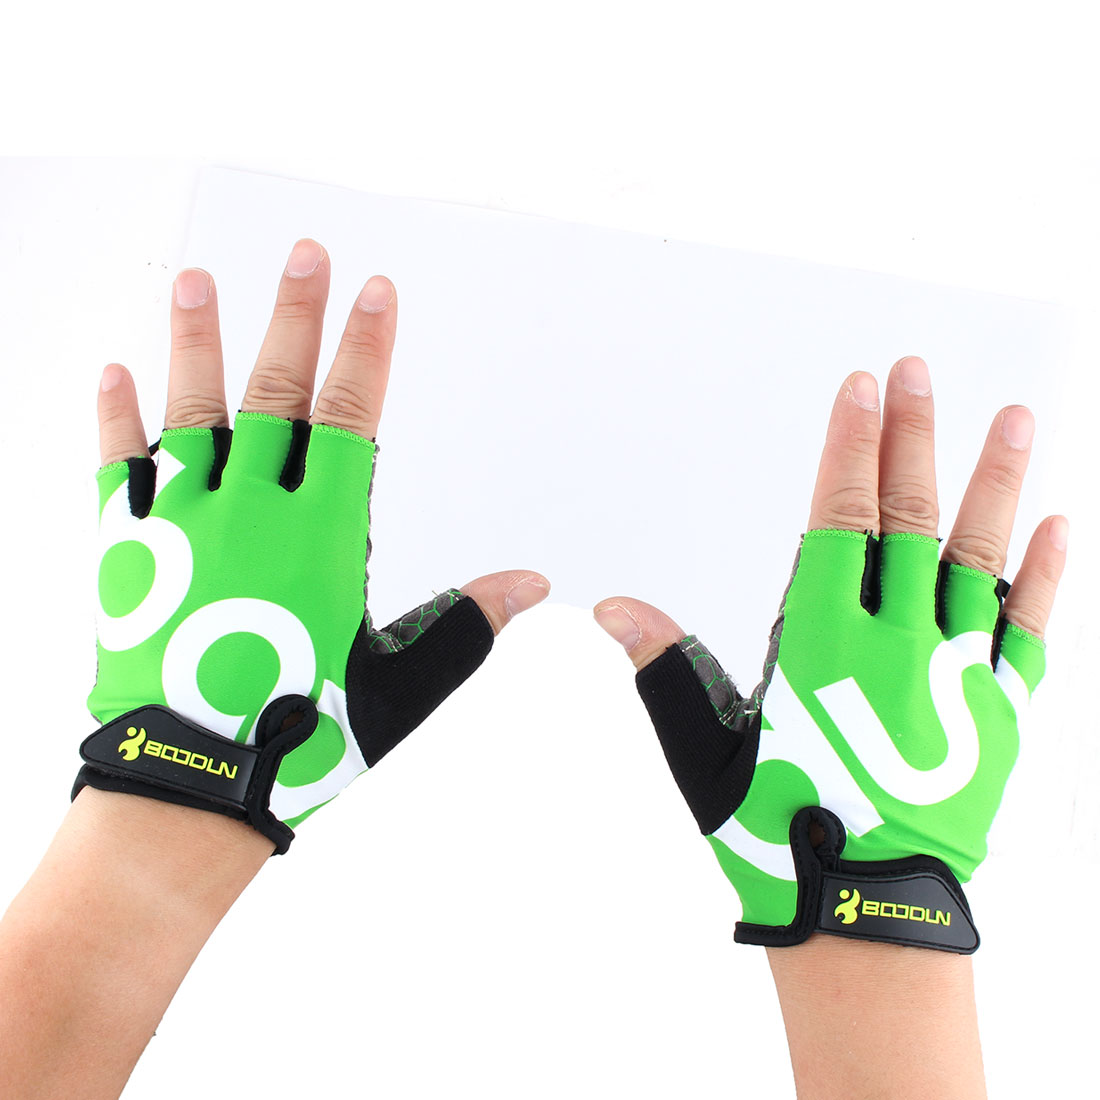 BOODUN Authorized Unisex Outdoor Sports Cycling Biking Exercise Adjustable Fitness Half Finger Gloves Green L Size Pair